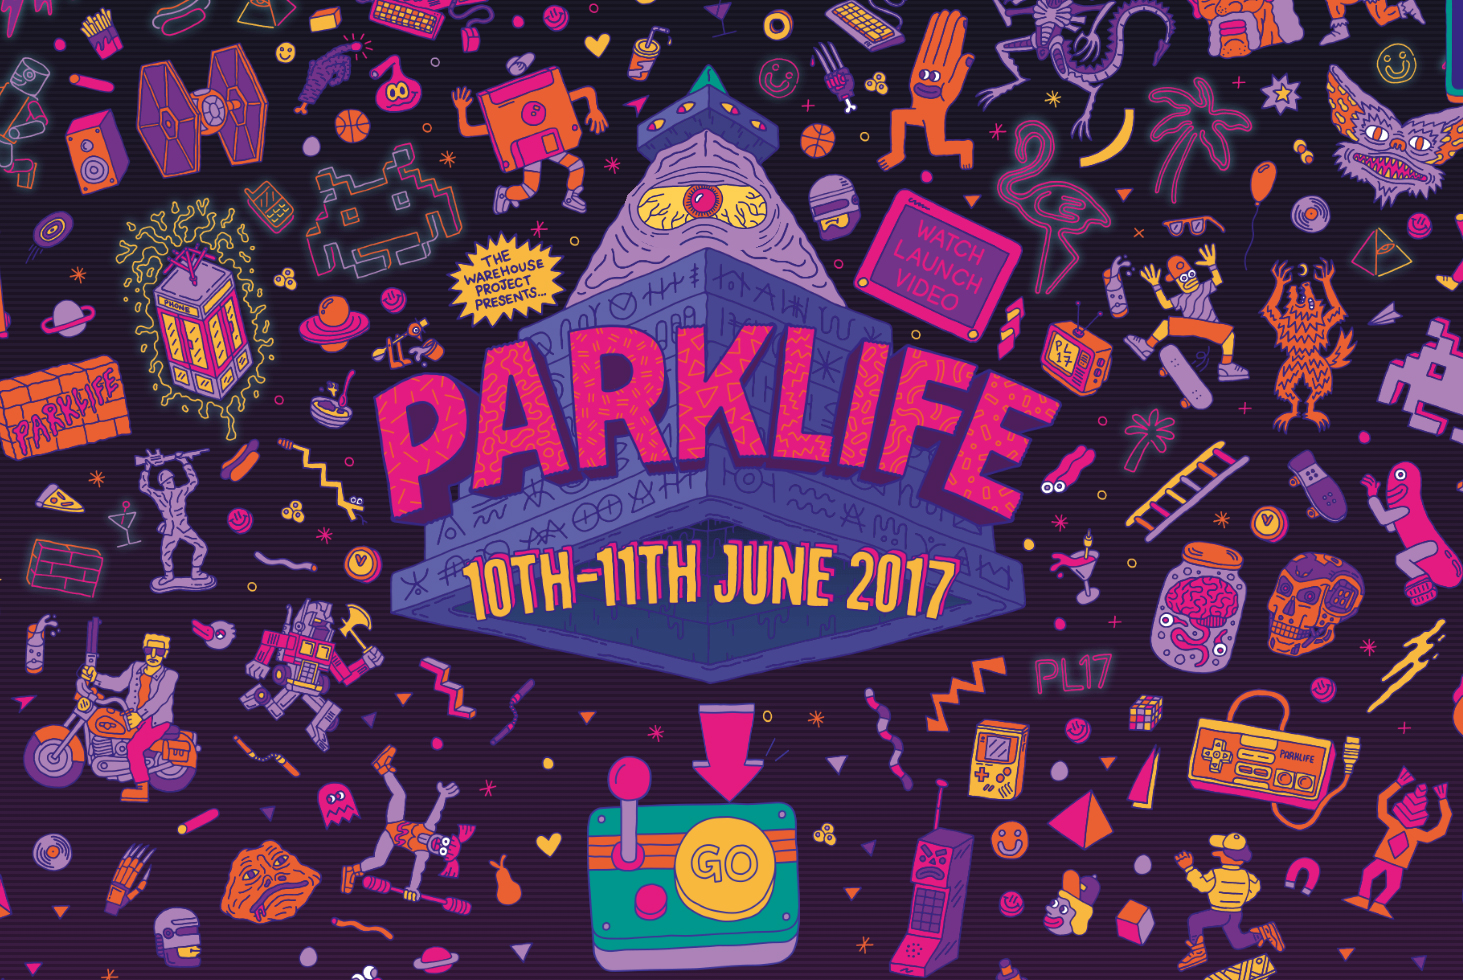 parklife-website-illustration-styles